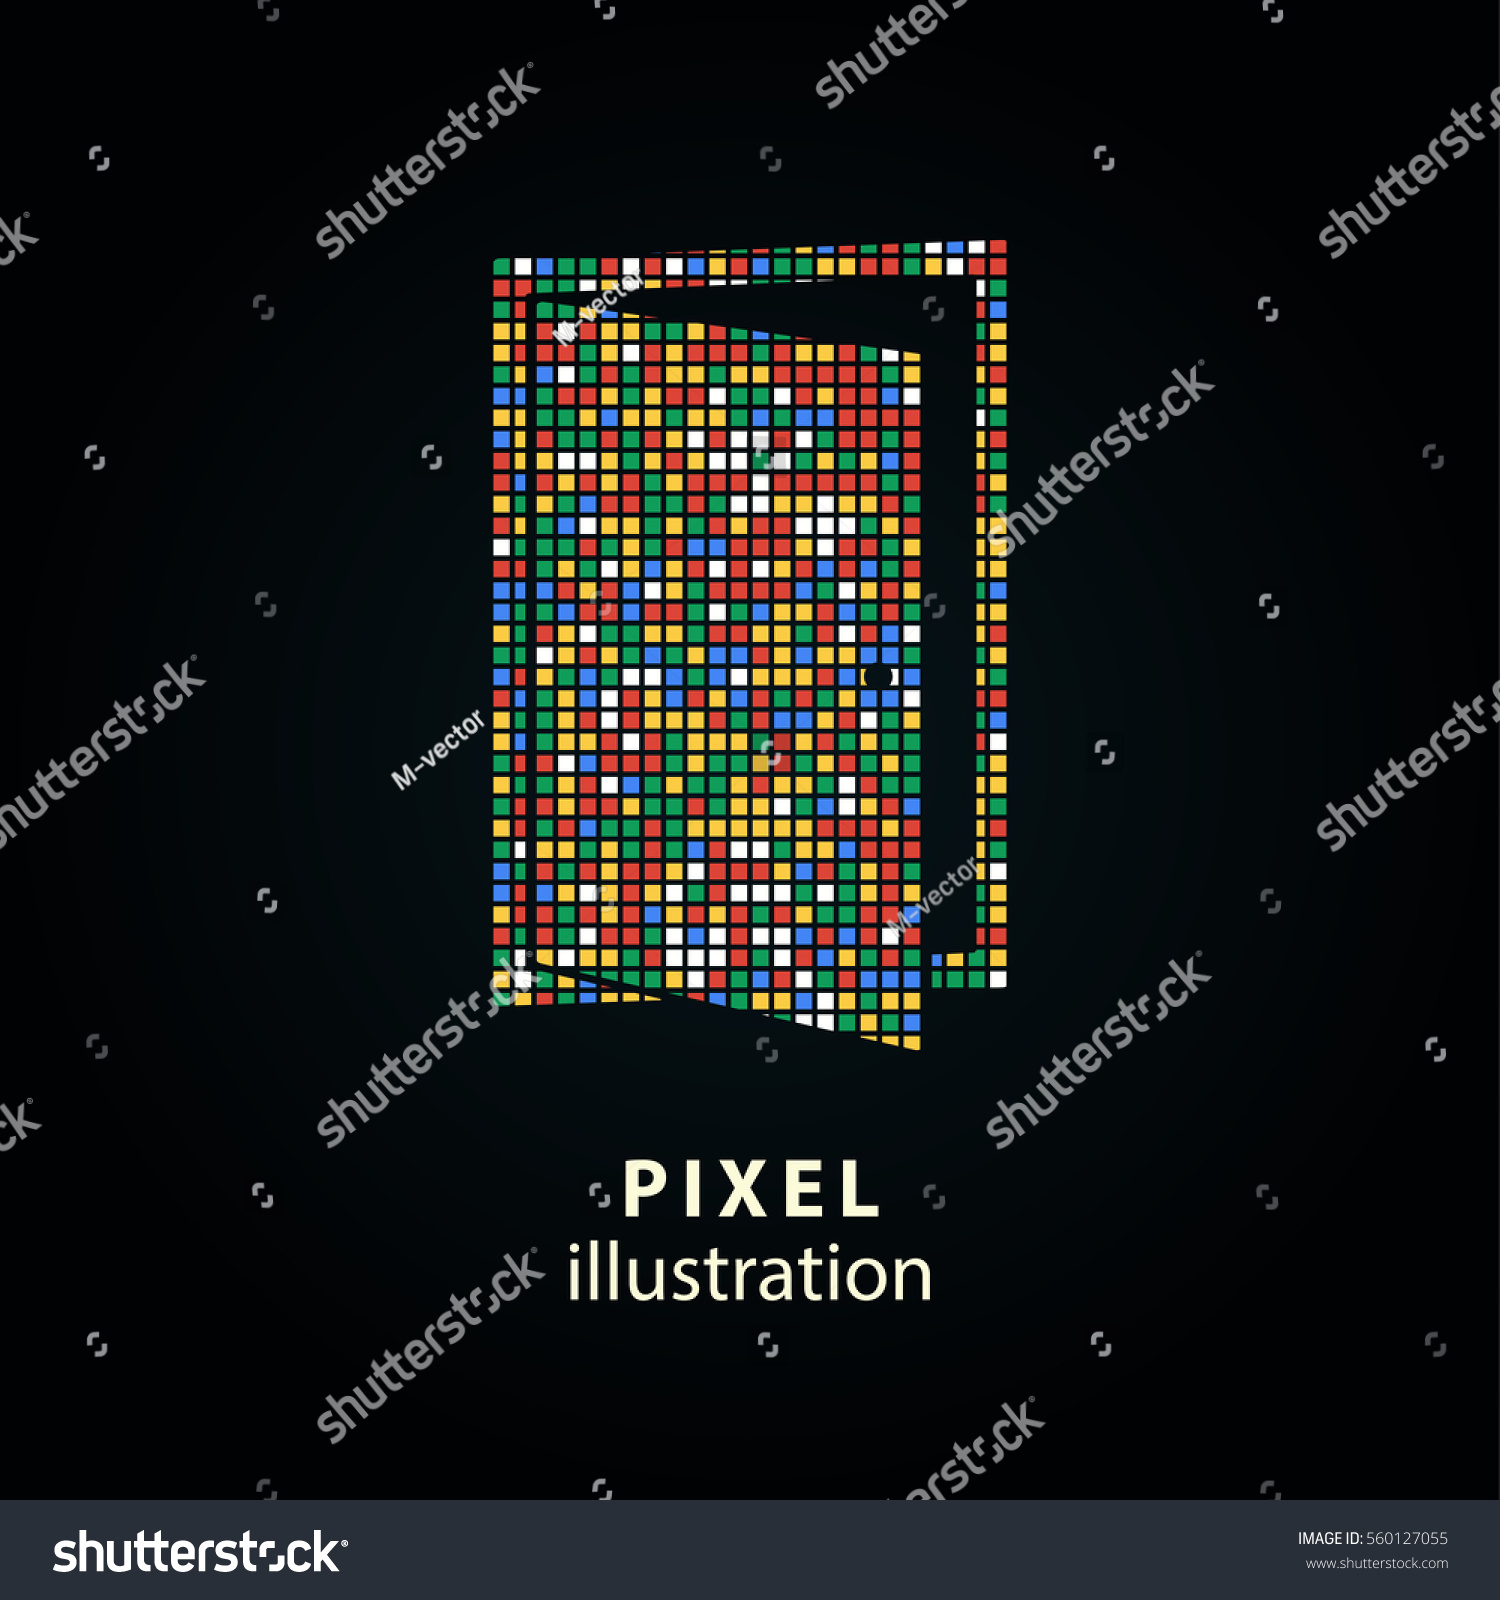 how to change a photo pixels